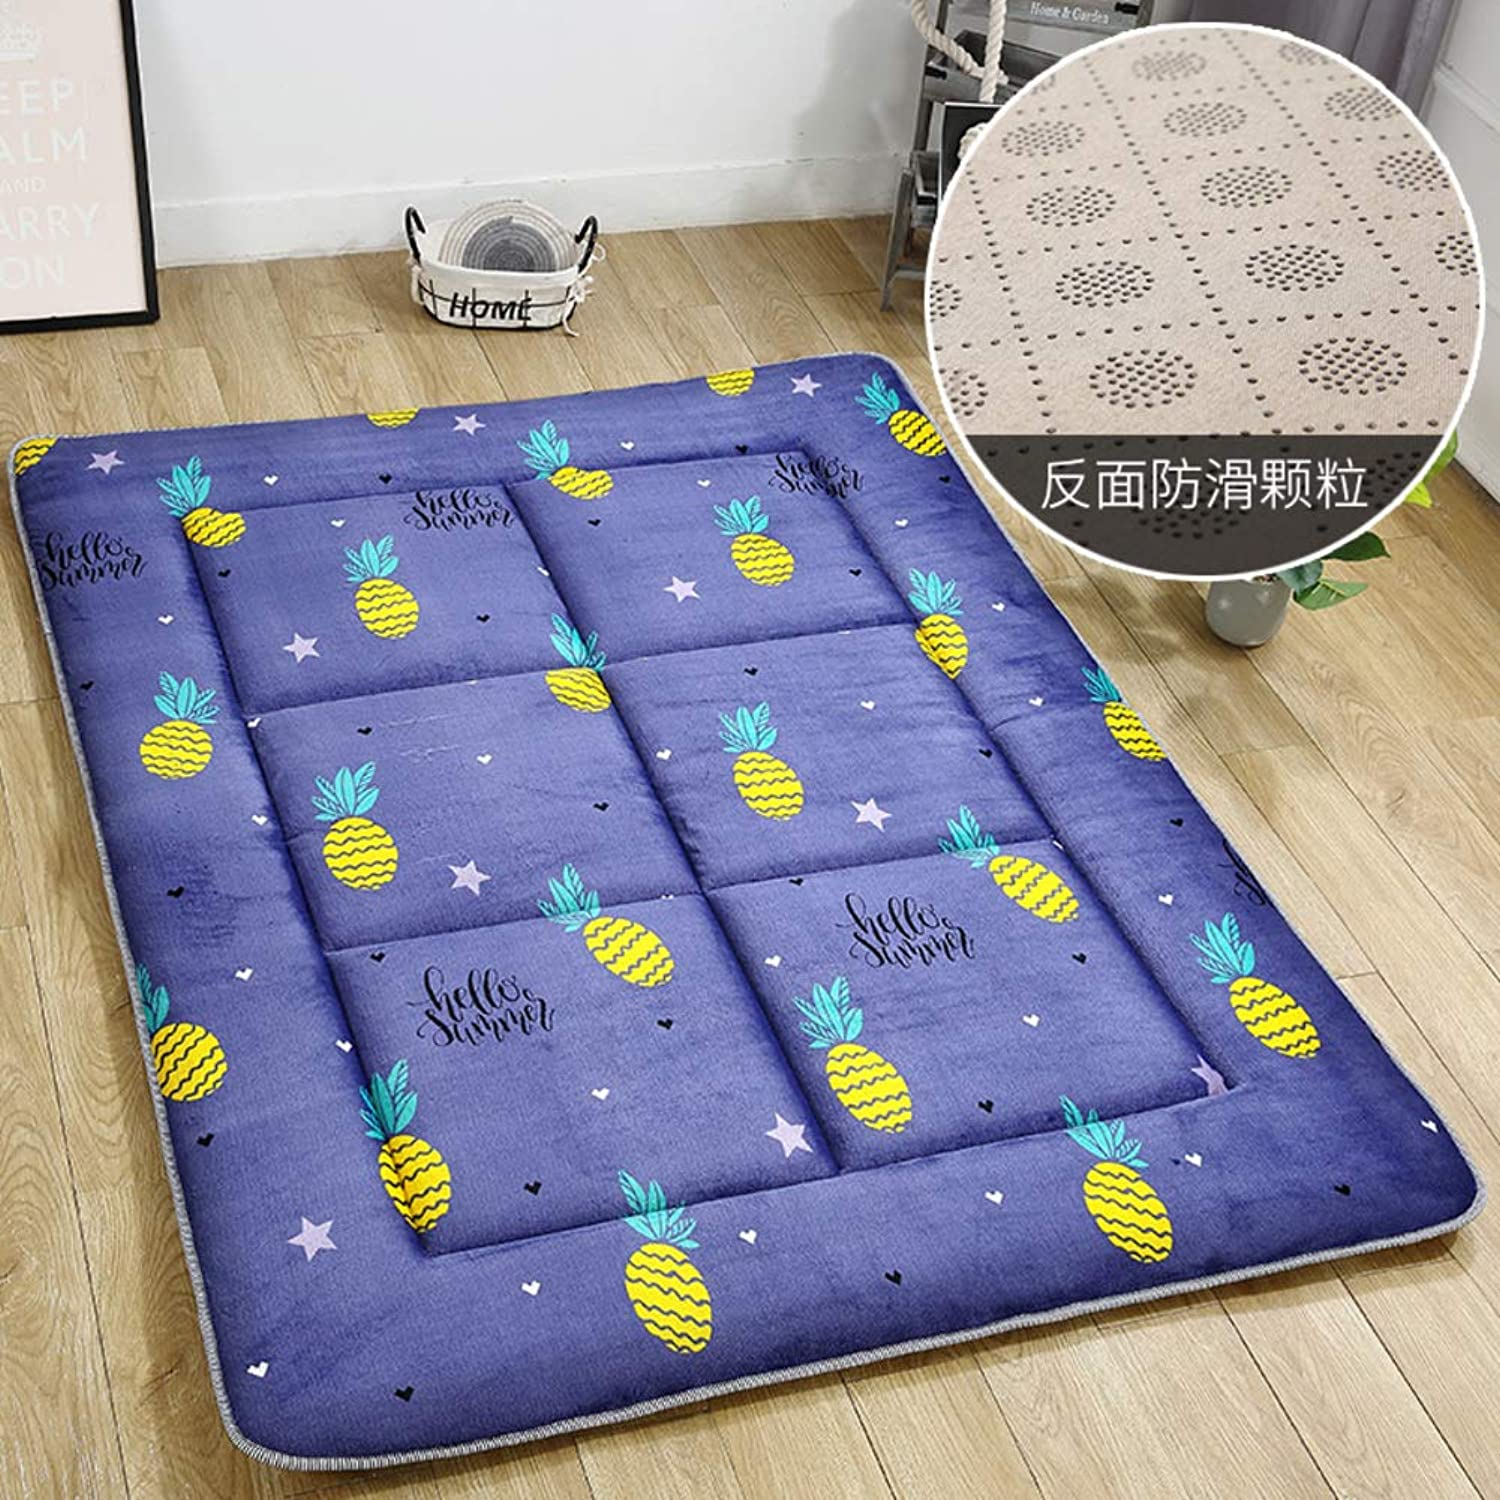 Flannel Quilted Mattress,1.5cm Thickness Foldable Printing Tatami Mattress,1.2m 1.8m Thin Section Student pad-F 135x200cm(53x79inch)